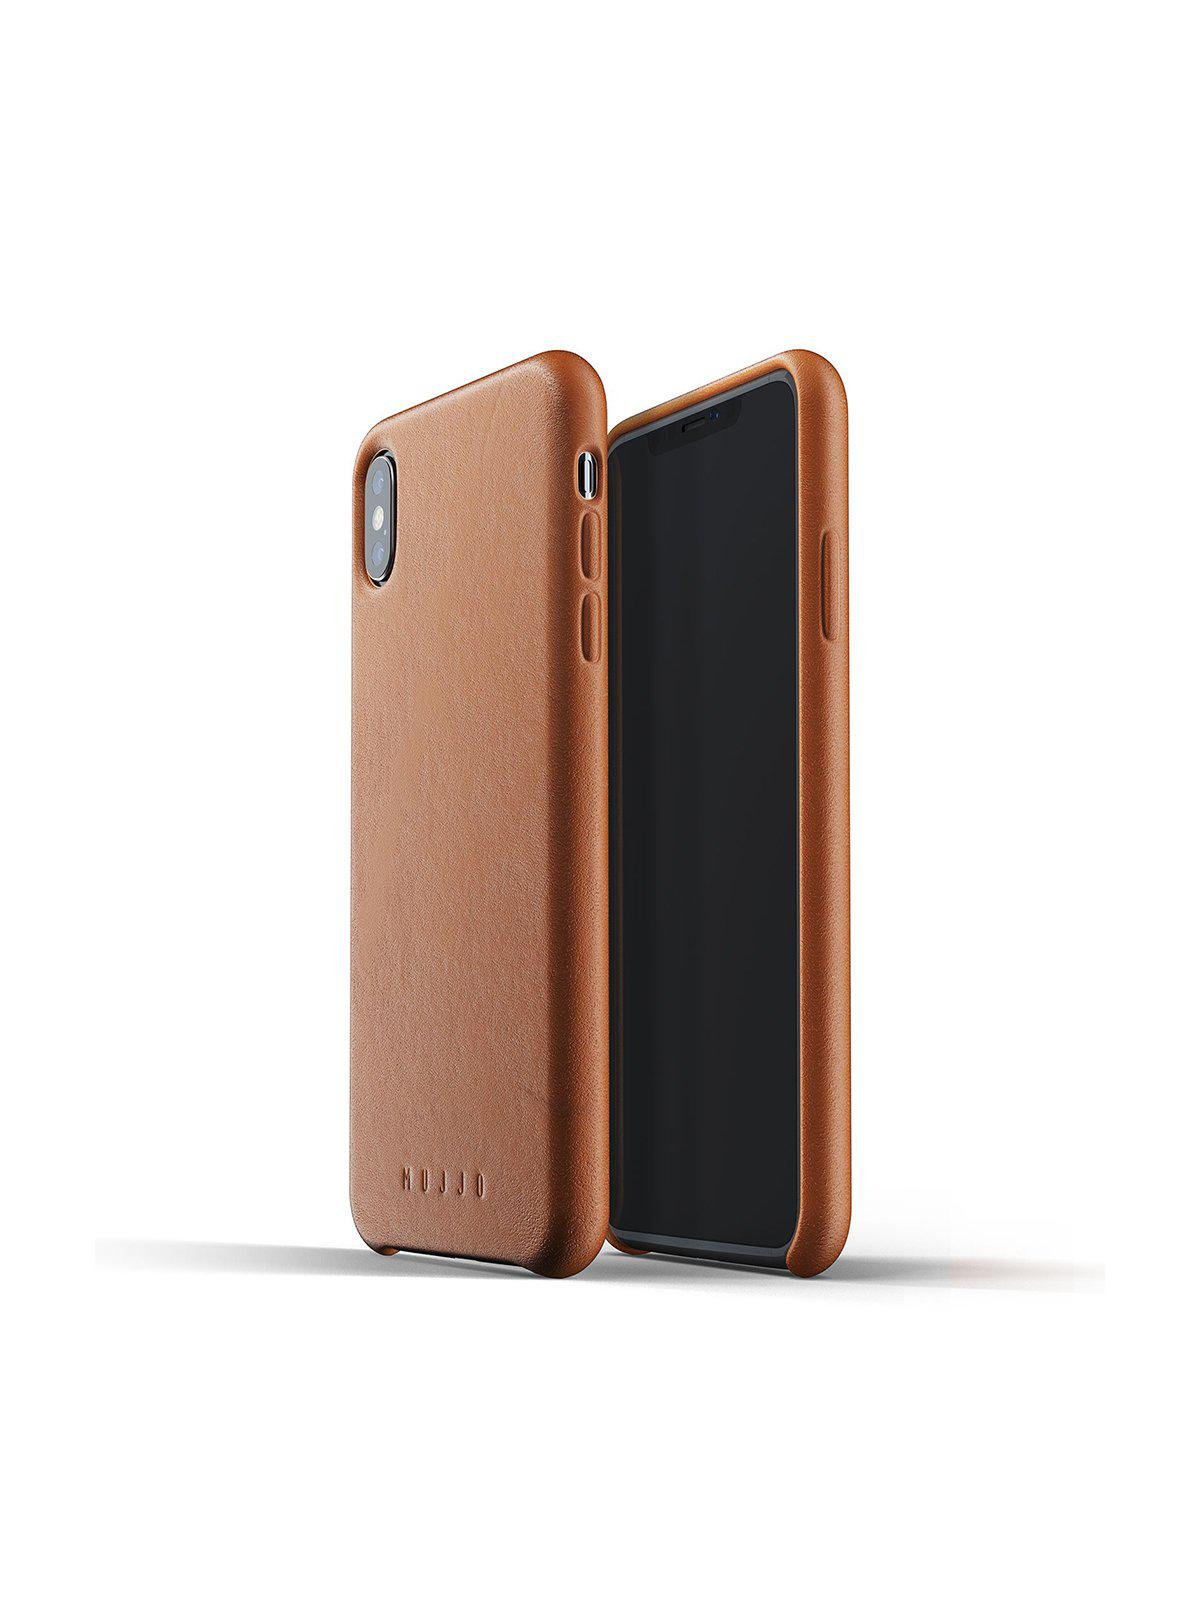 Mujjo Full Leather Case for iPhone XS Max Tan - MORE by Morello Indonesia